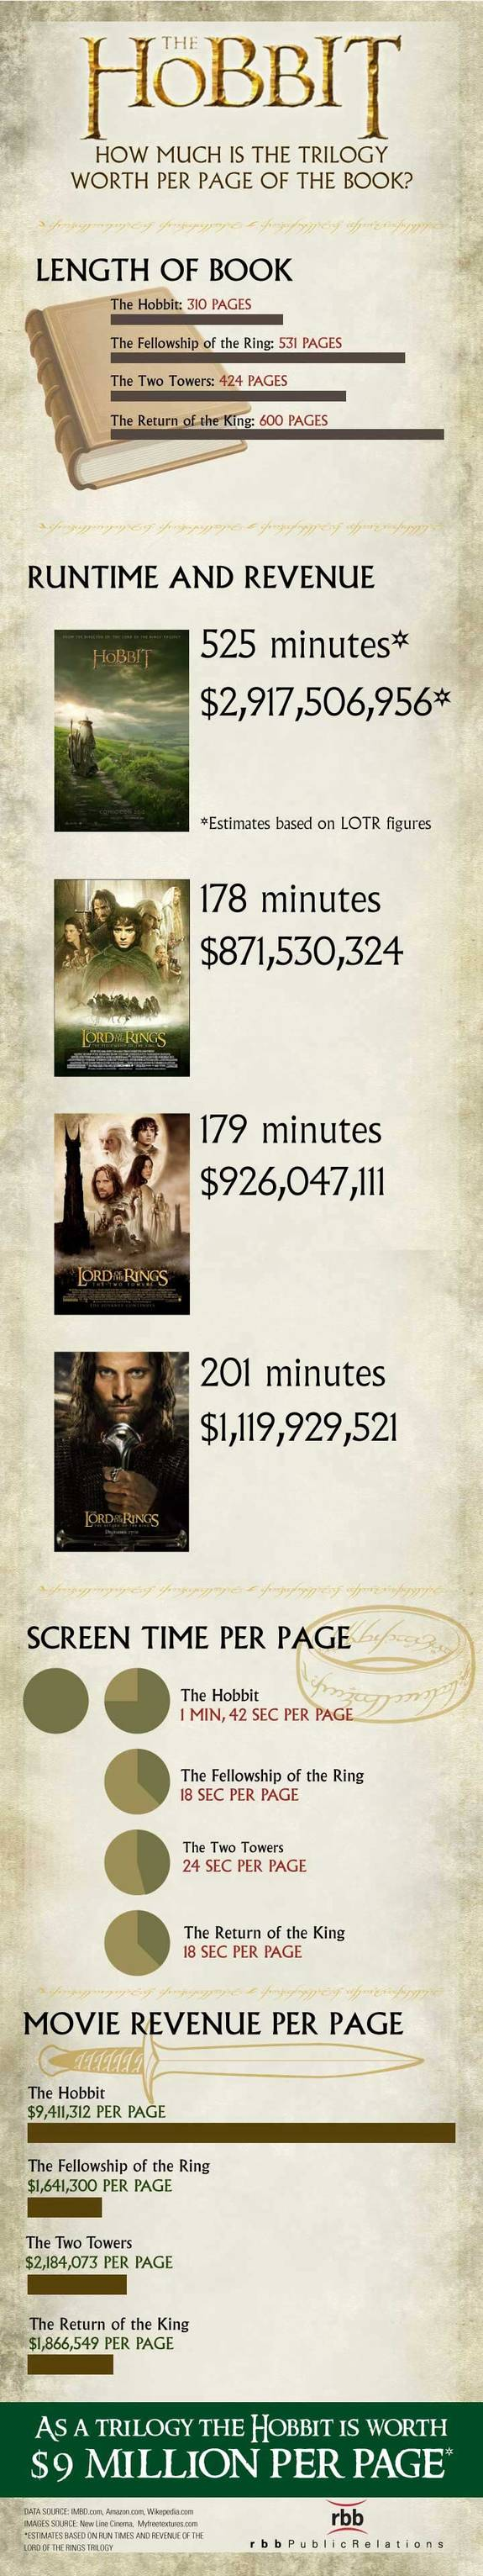 Hobbit movie trilogy infographic